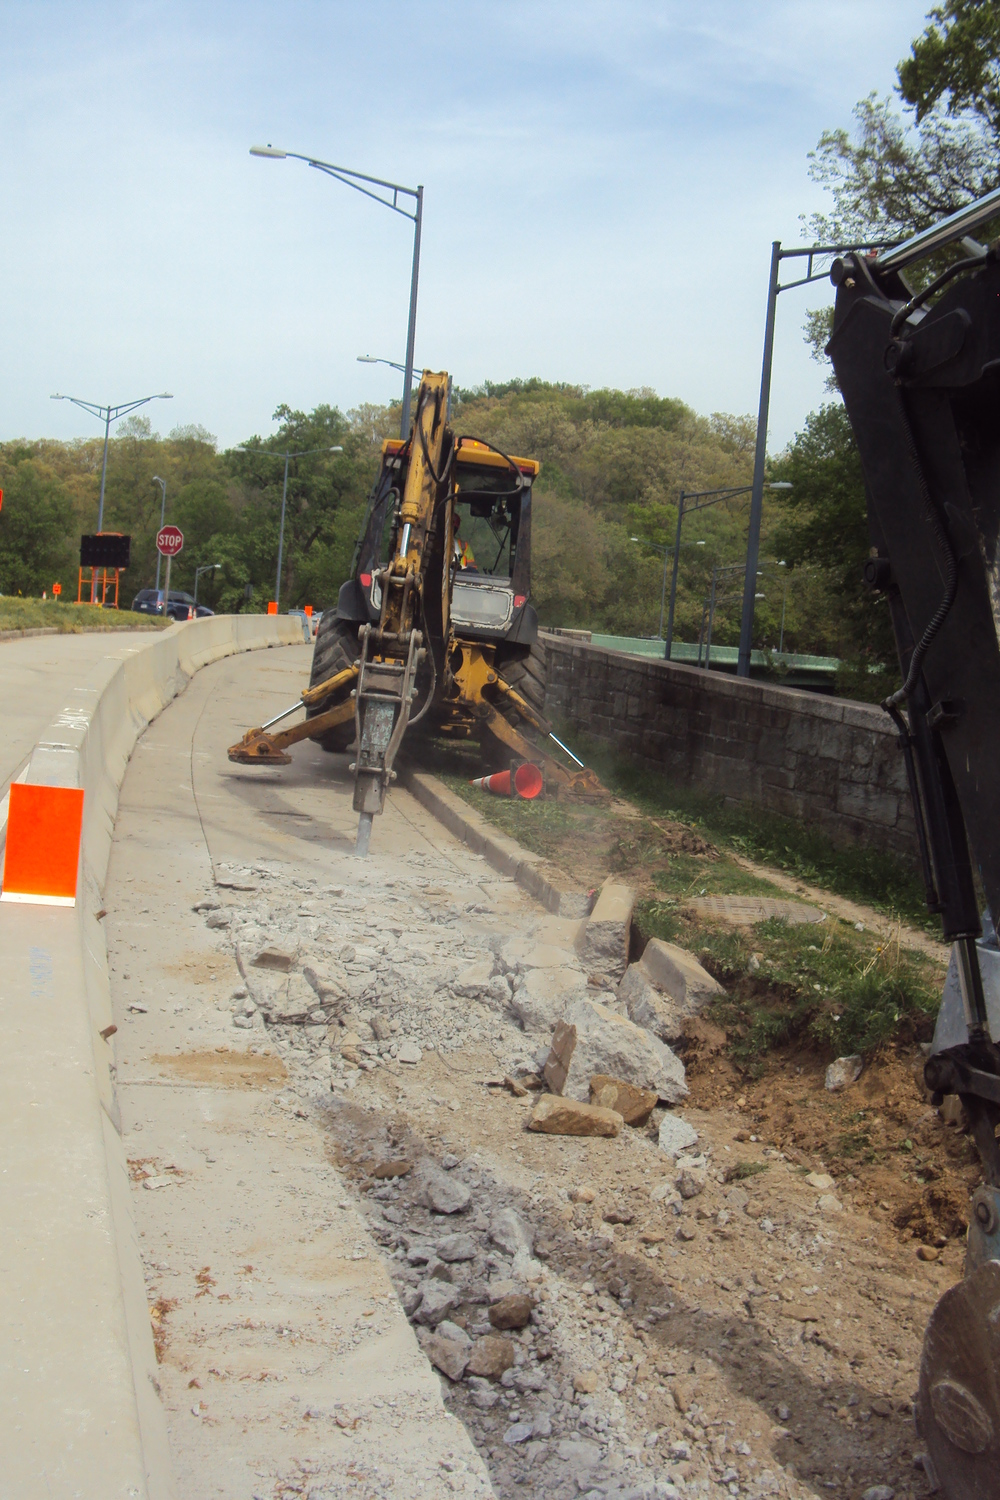 Removing a section of the ramp to accommodate the new sidewalk